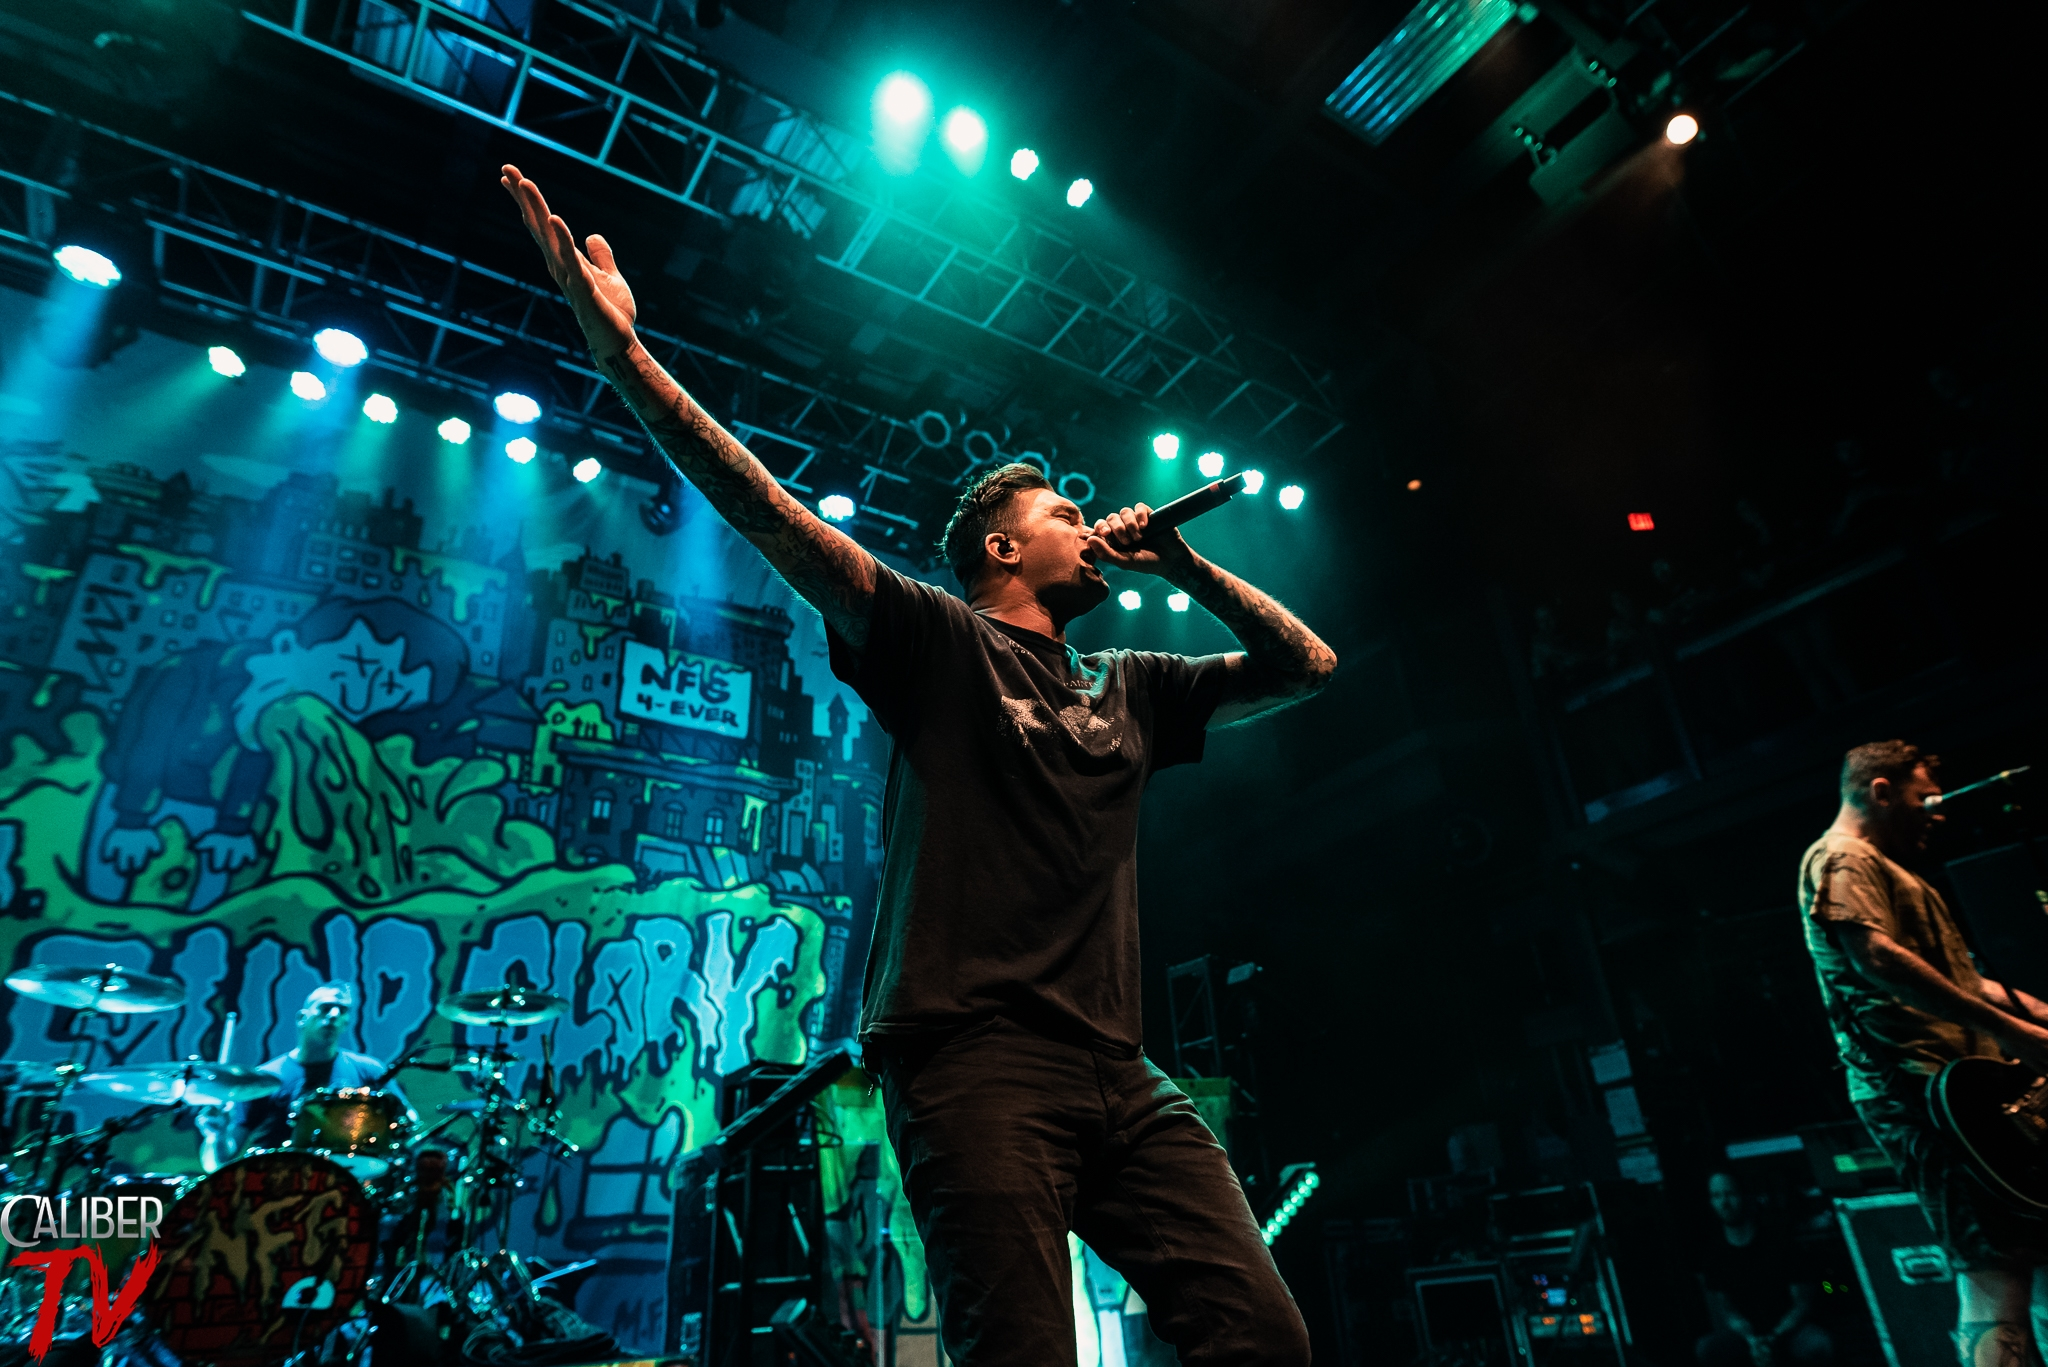 The Sick Tour – Silver Spring, MD – 5.22.18